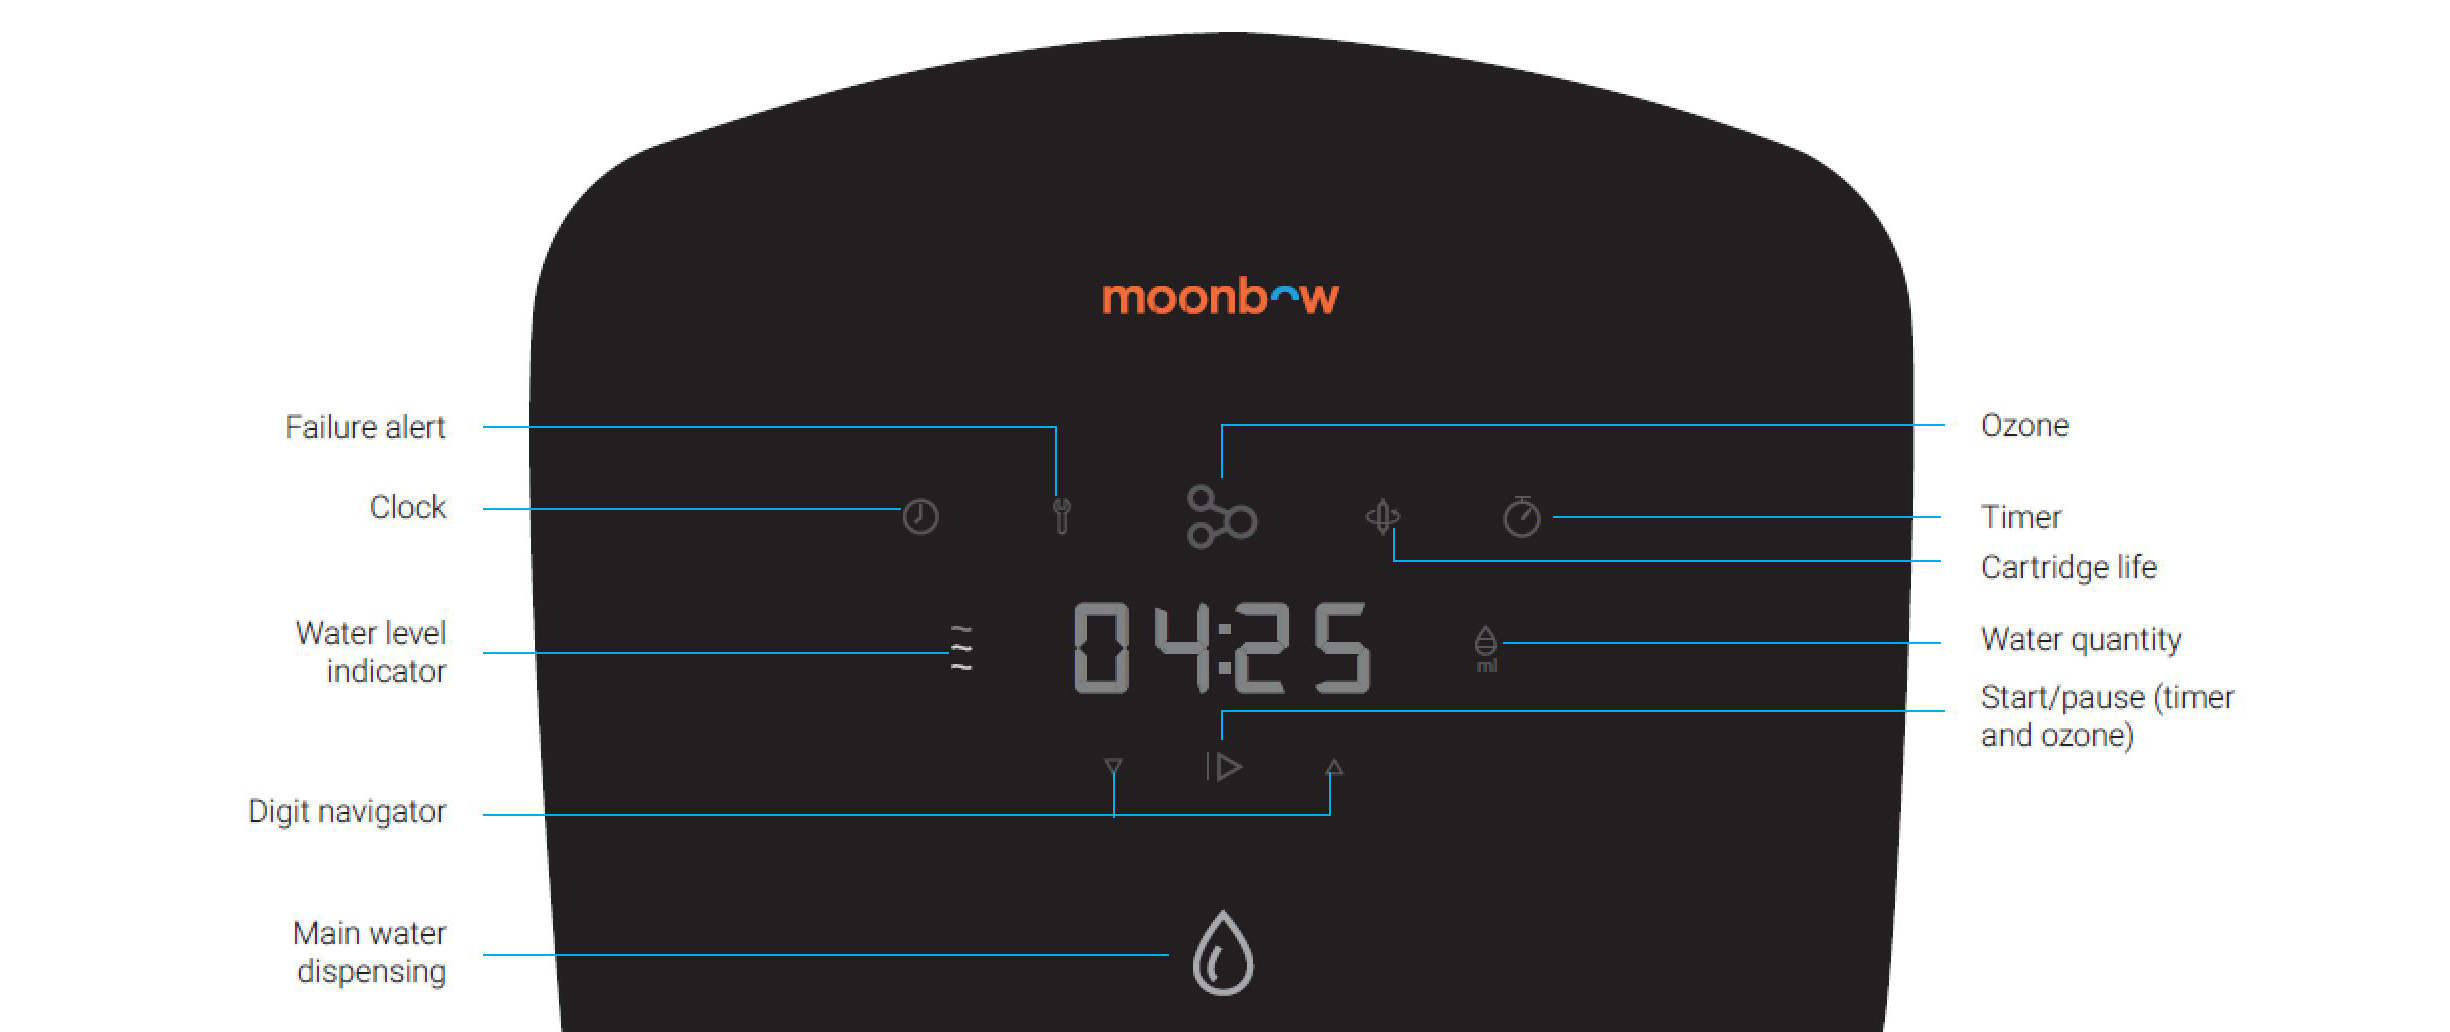 moonbow interface design